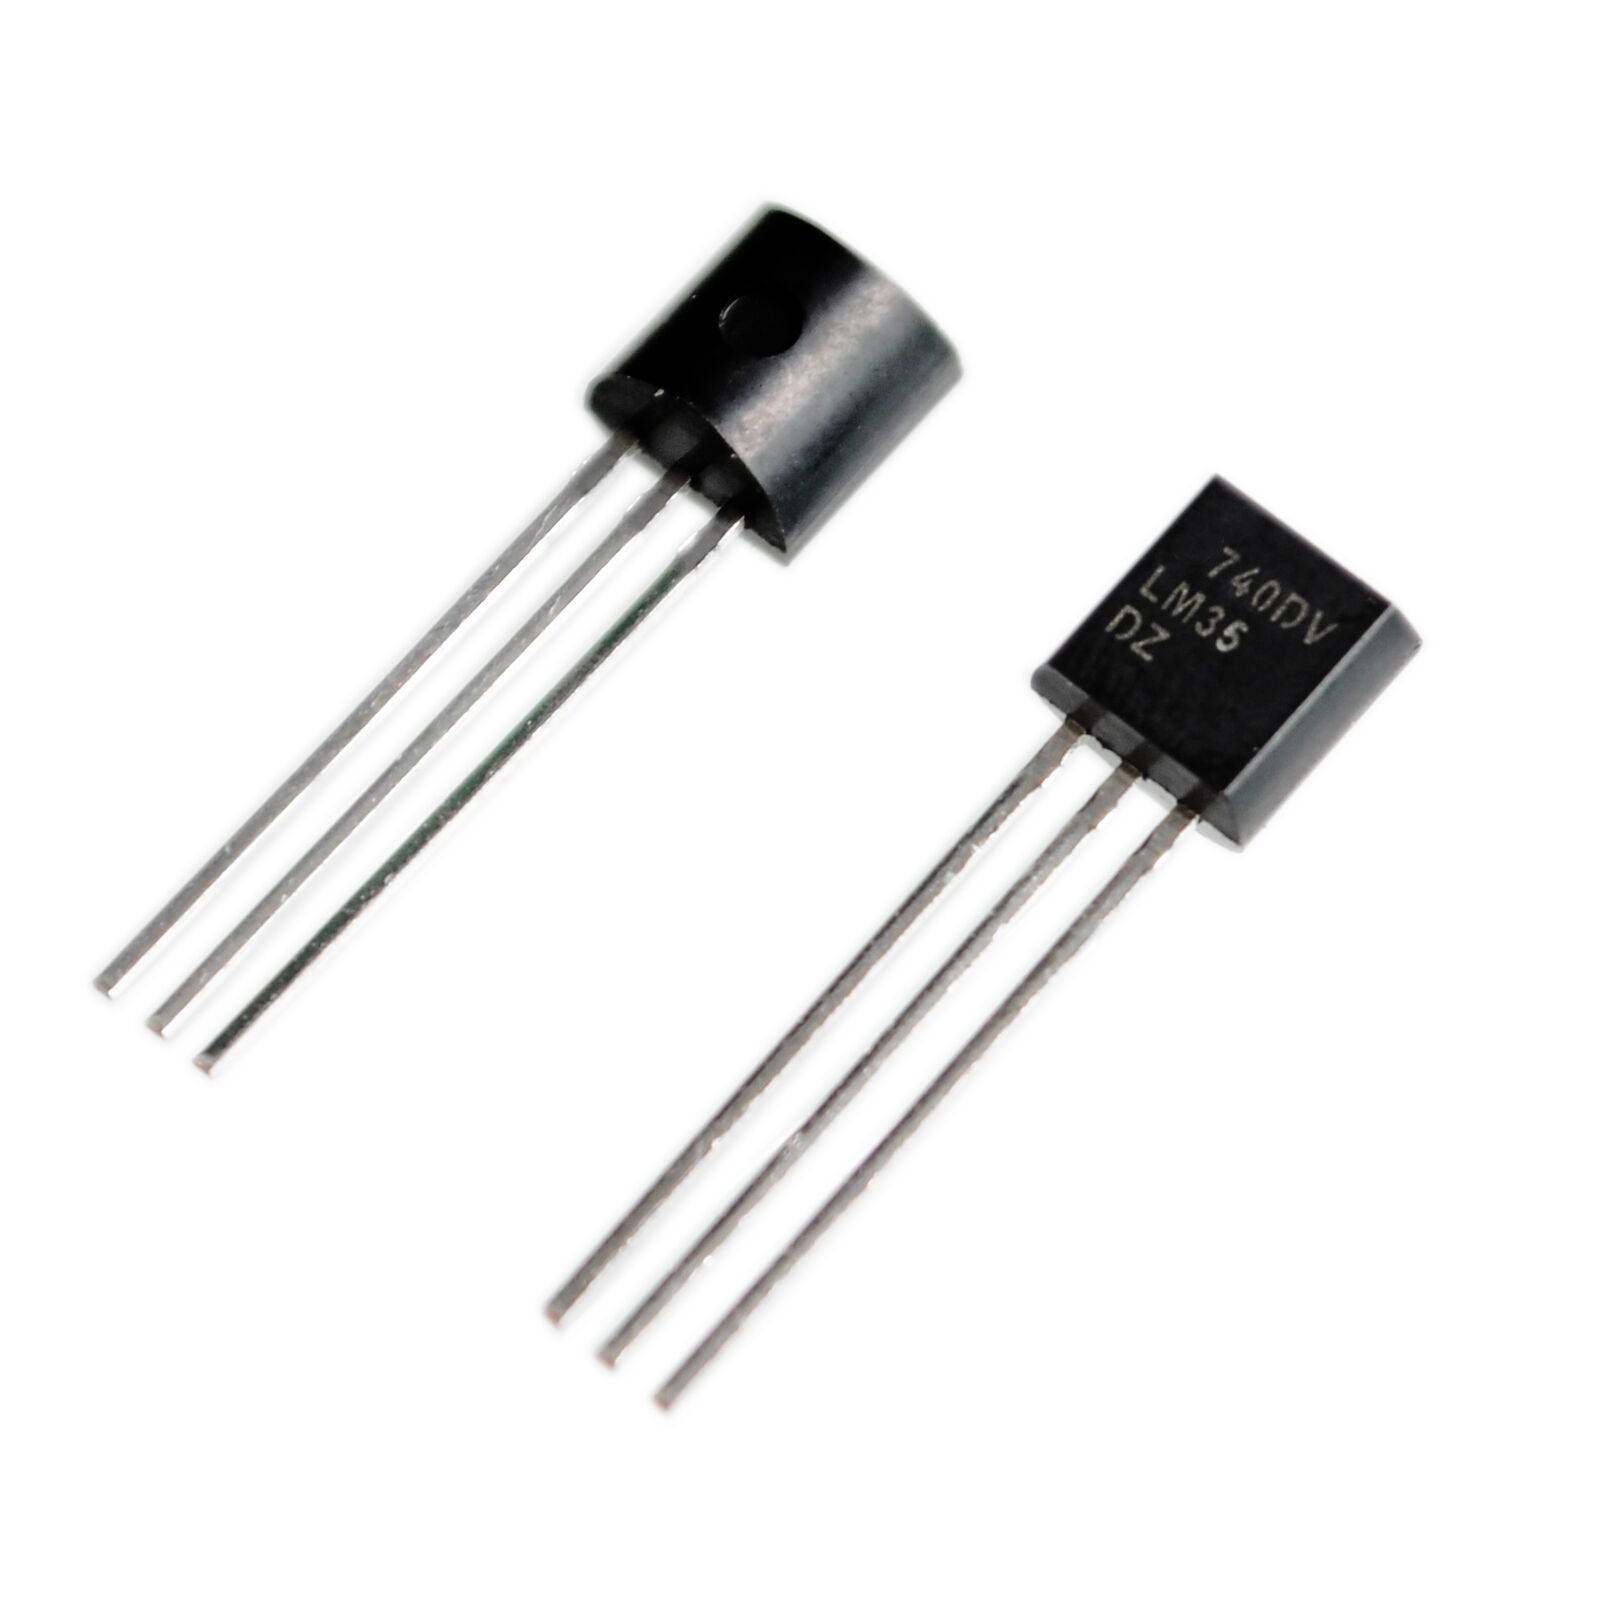 Precision Centigrade Temperature Sensors LM35 LM35DZ TO92 TO-92